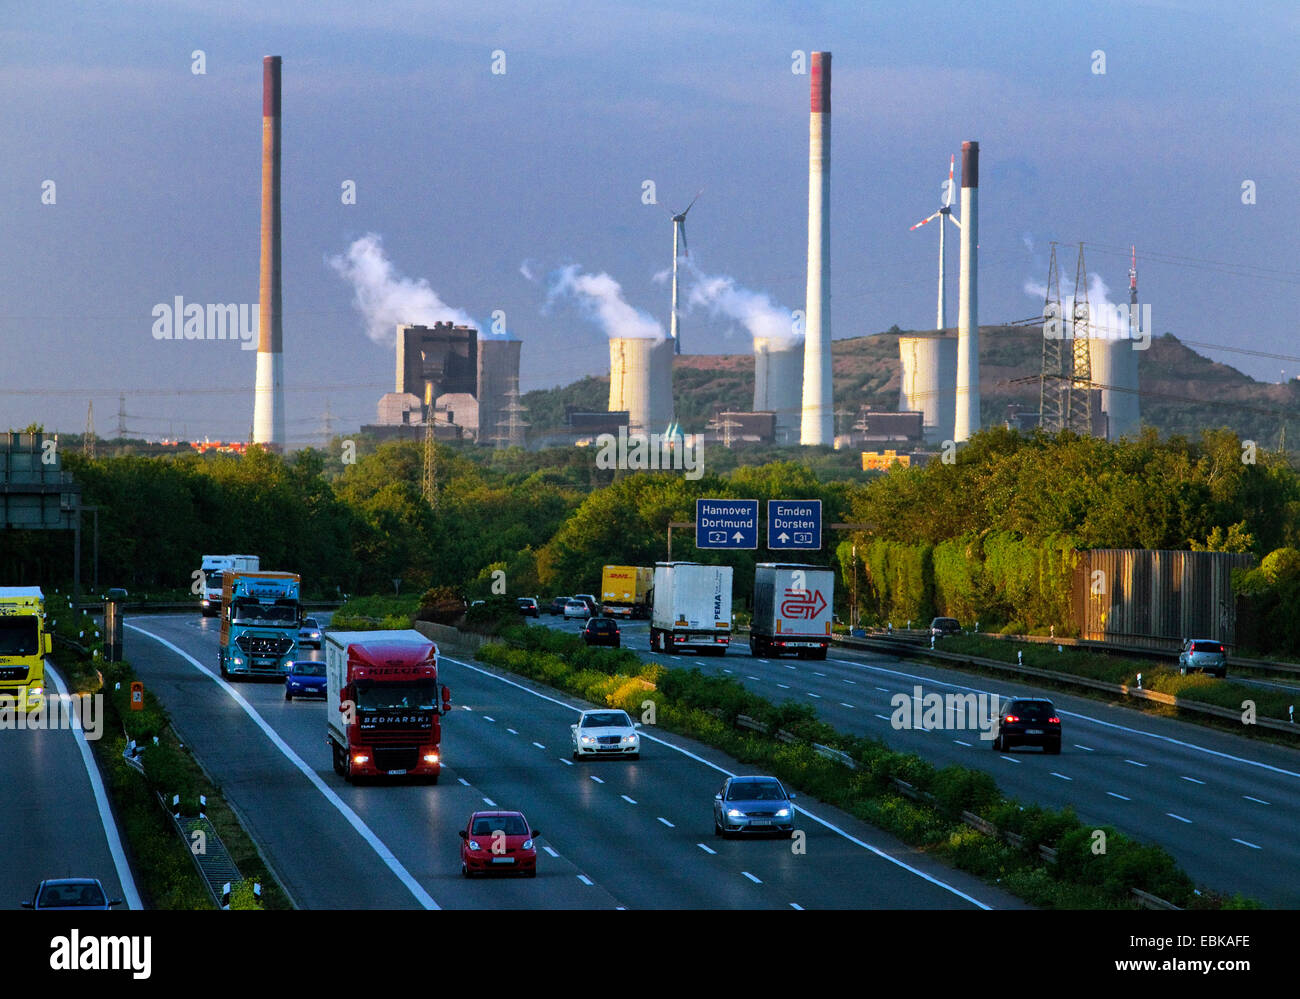 traffic on motorway A2 and coal-fired power plant Scholven, Germany, North Rhine-Westphalia, Ruhr Area, Gelsenkirchen Stock Photo